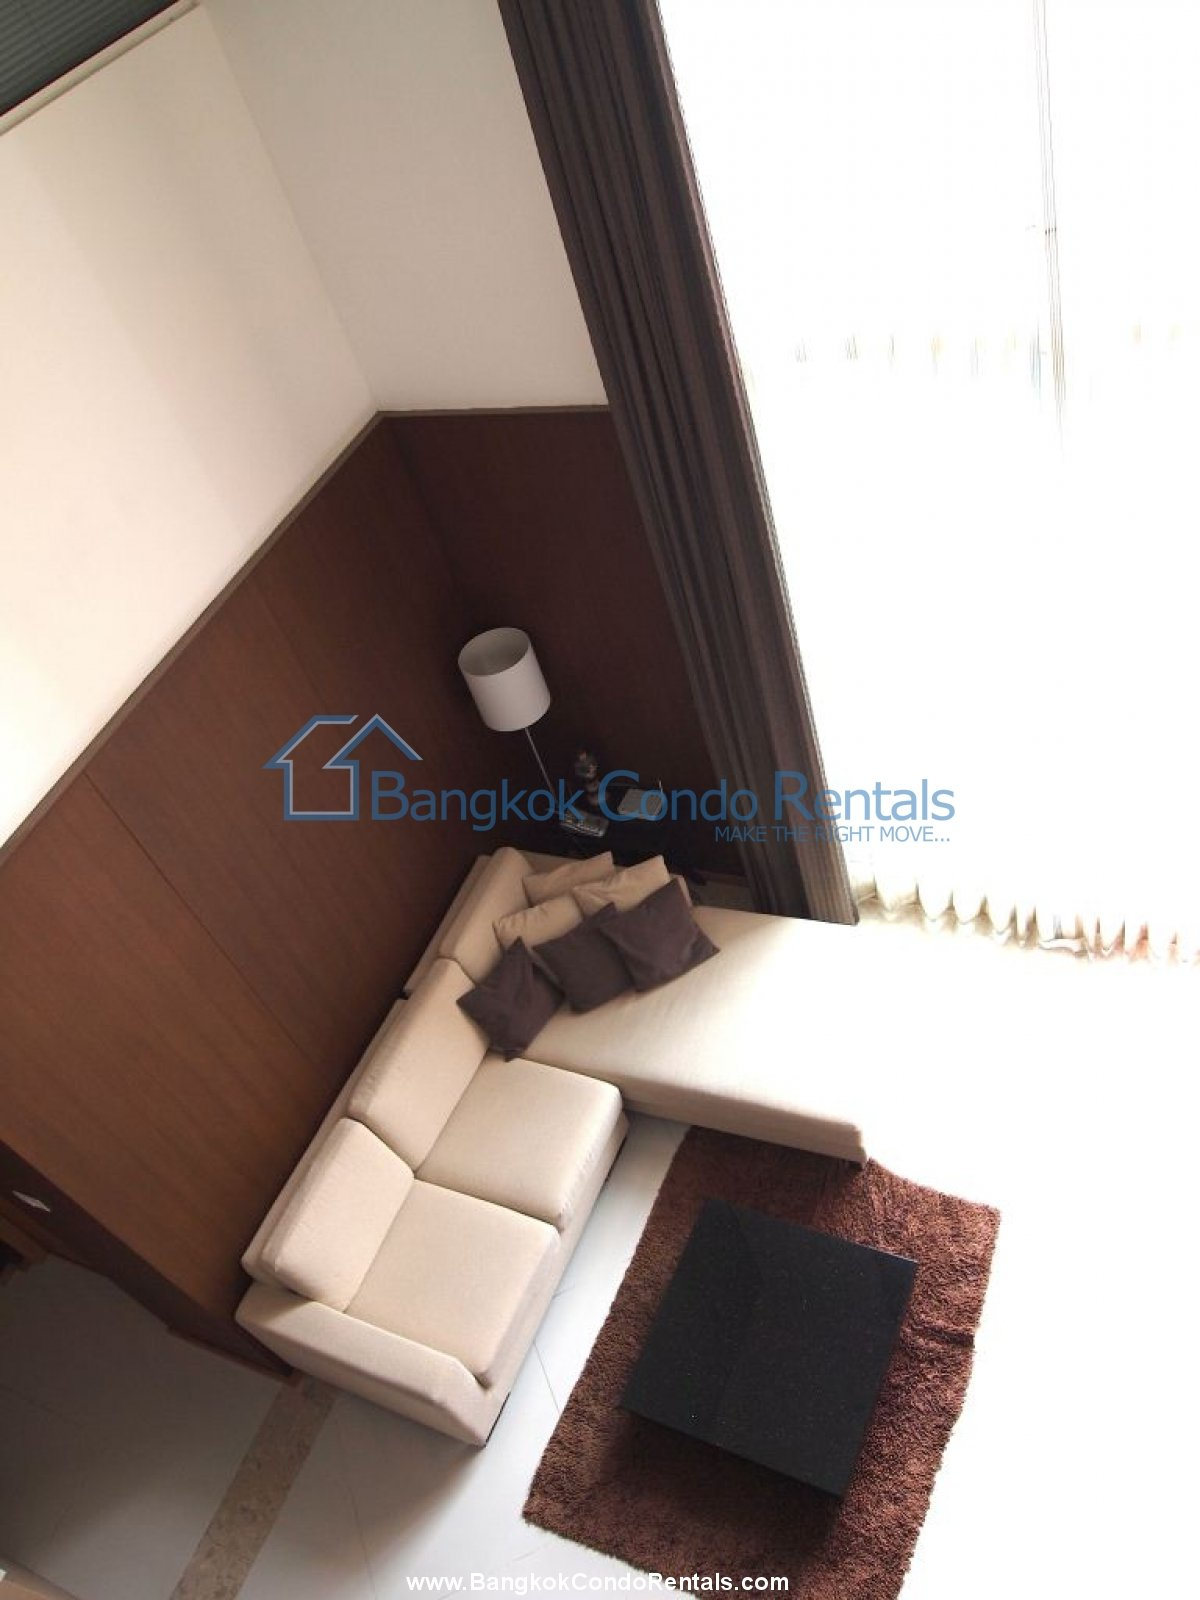 Property Bangkok Condo For RENT Chong Nonsi Empire Place by Bangkok Condo Rentals Bangkok Real Estate Bangkok.